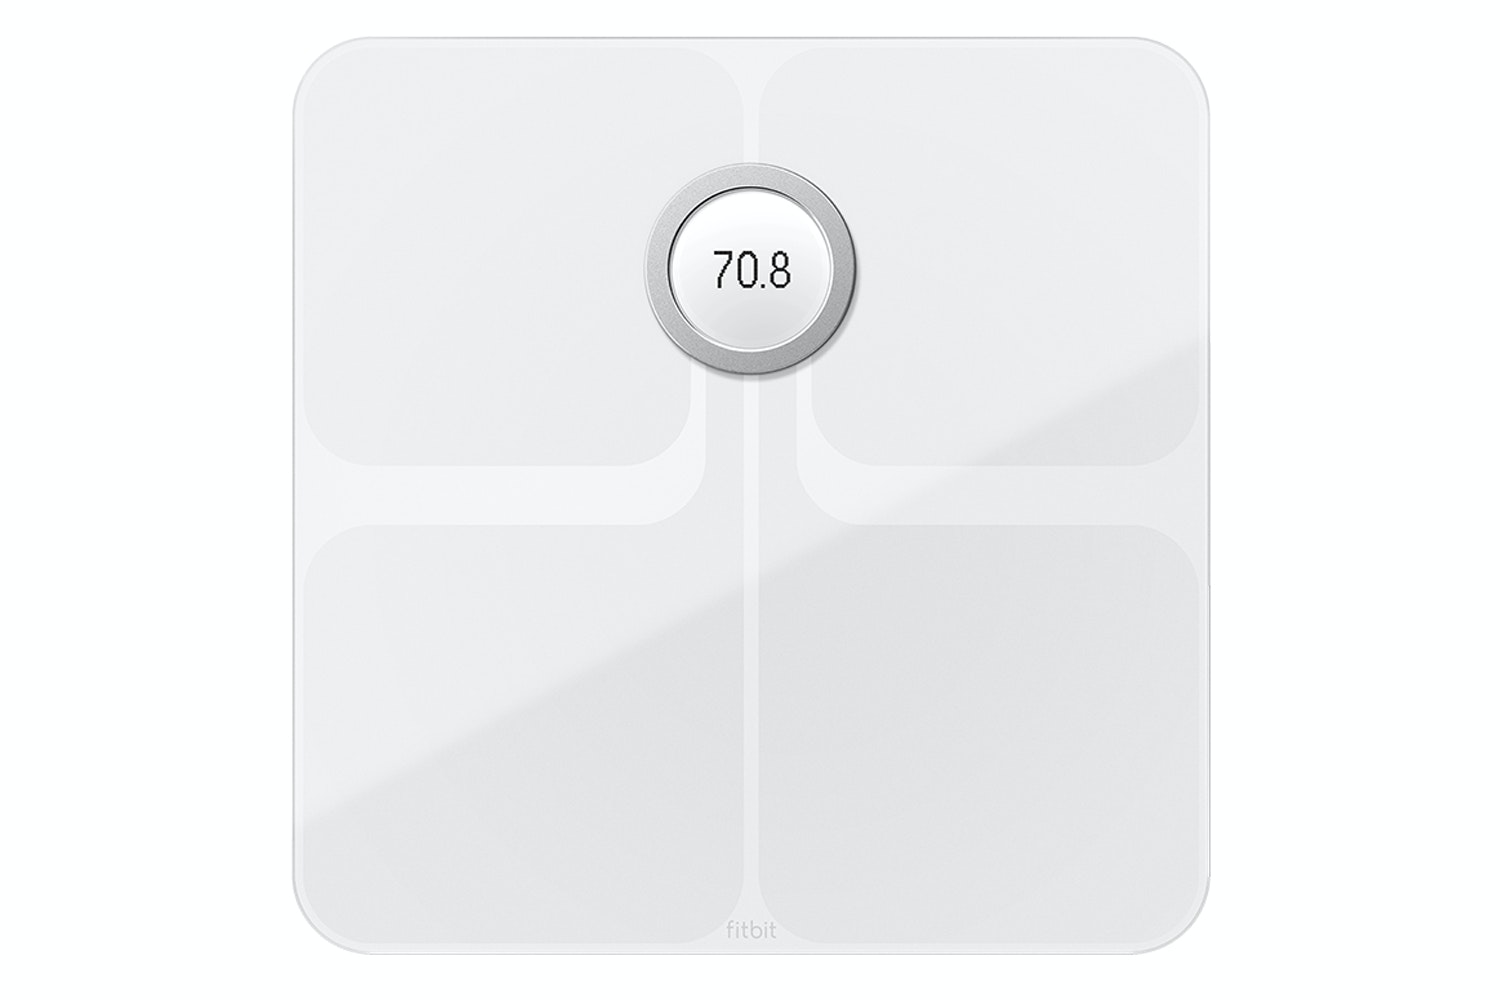 Fitbit Aria 2 WiFi Smart Scale | White